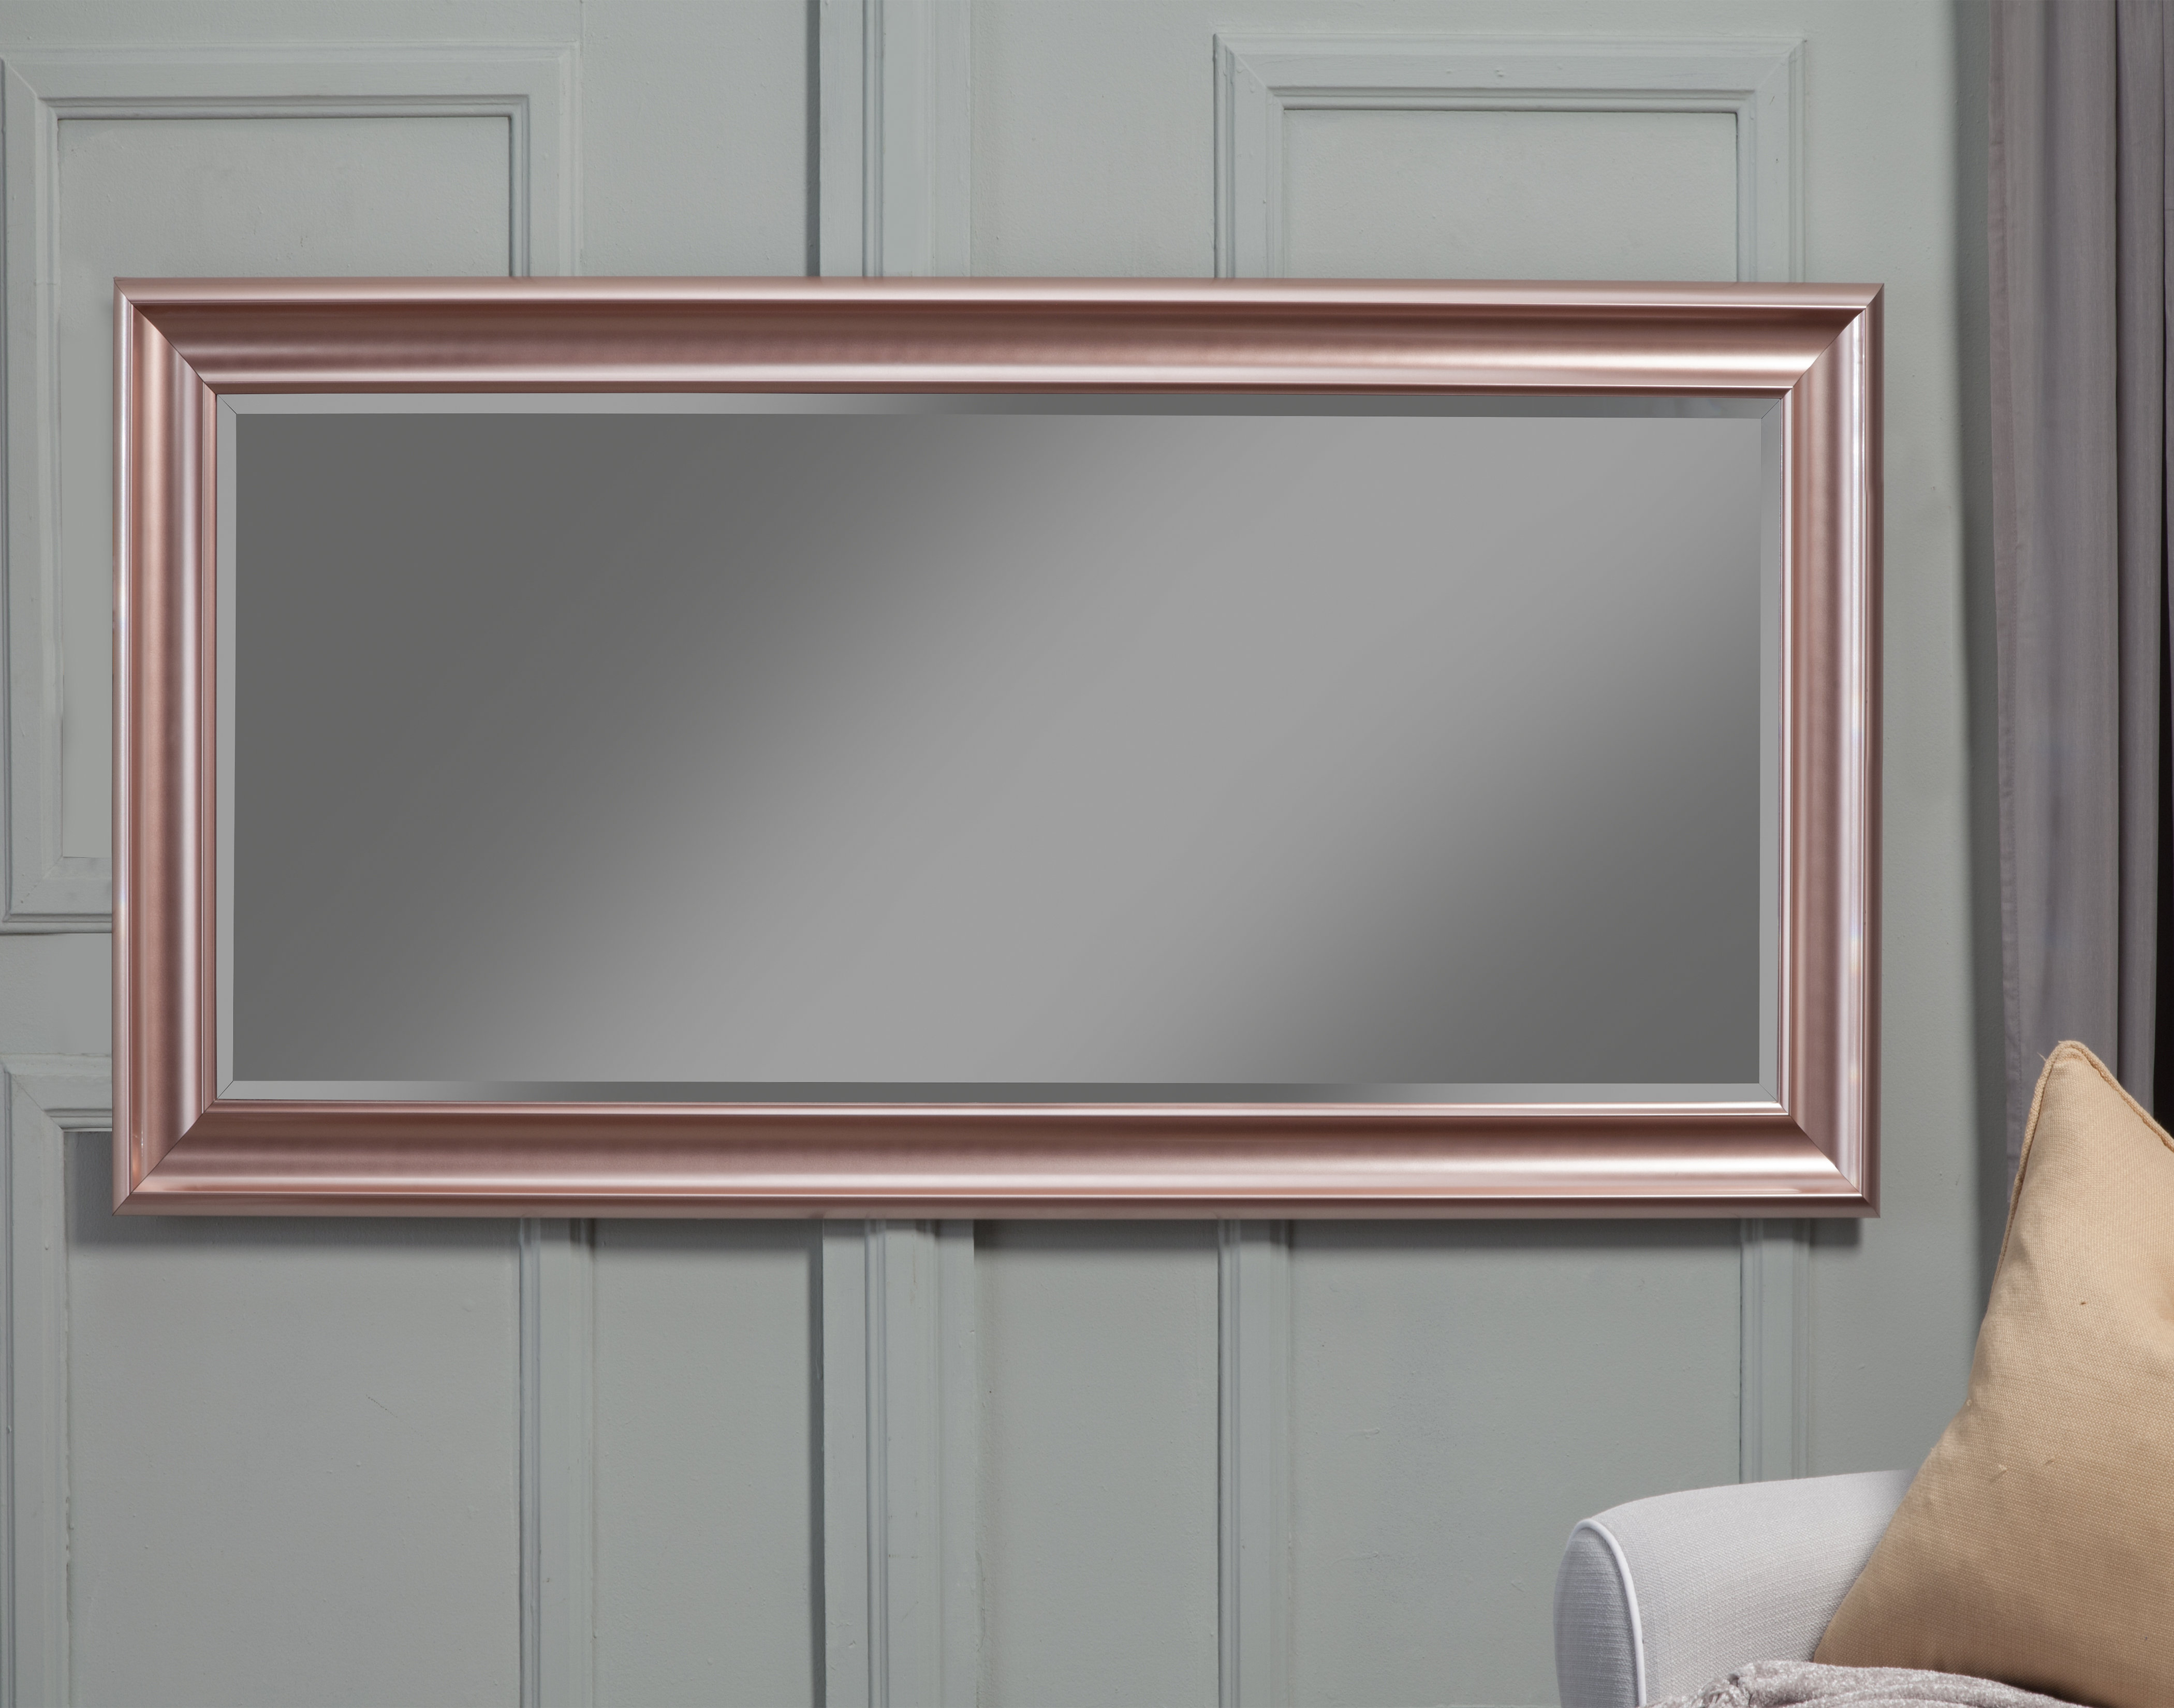 Northcutt Full Length Mirror & Reviews | Birch Lane Throughout Northcutt Accent Mirrors (View 19 of 30)